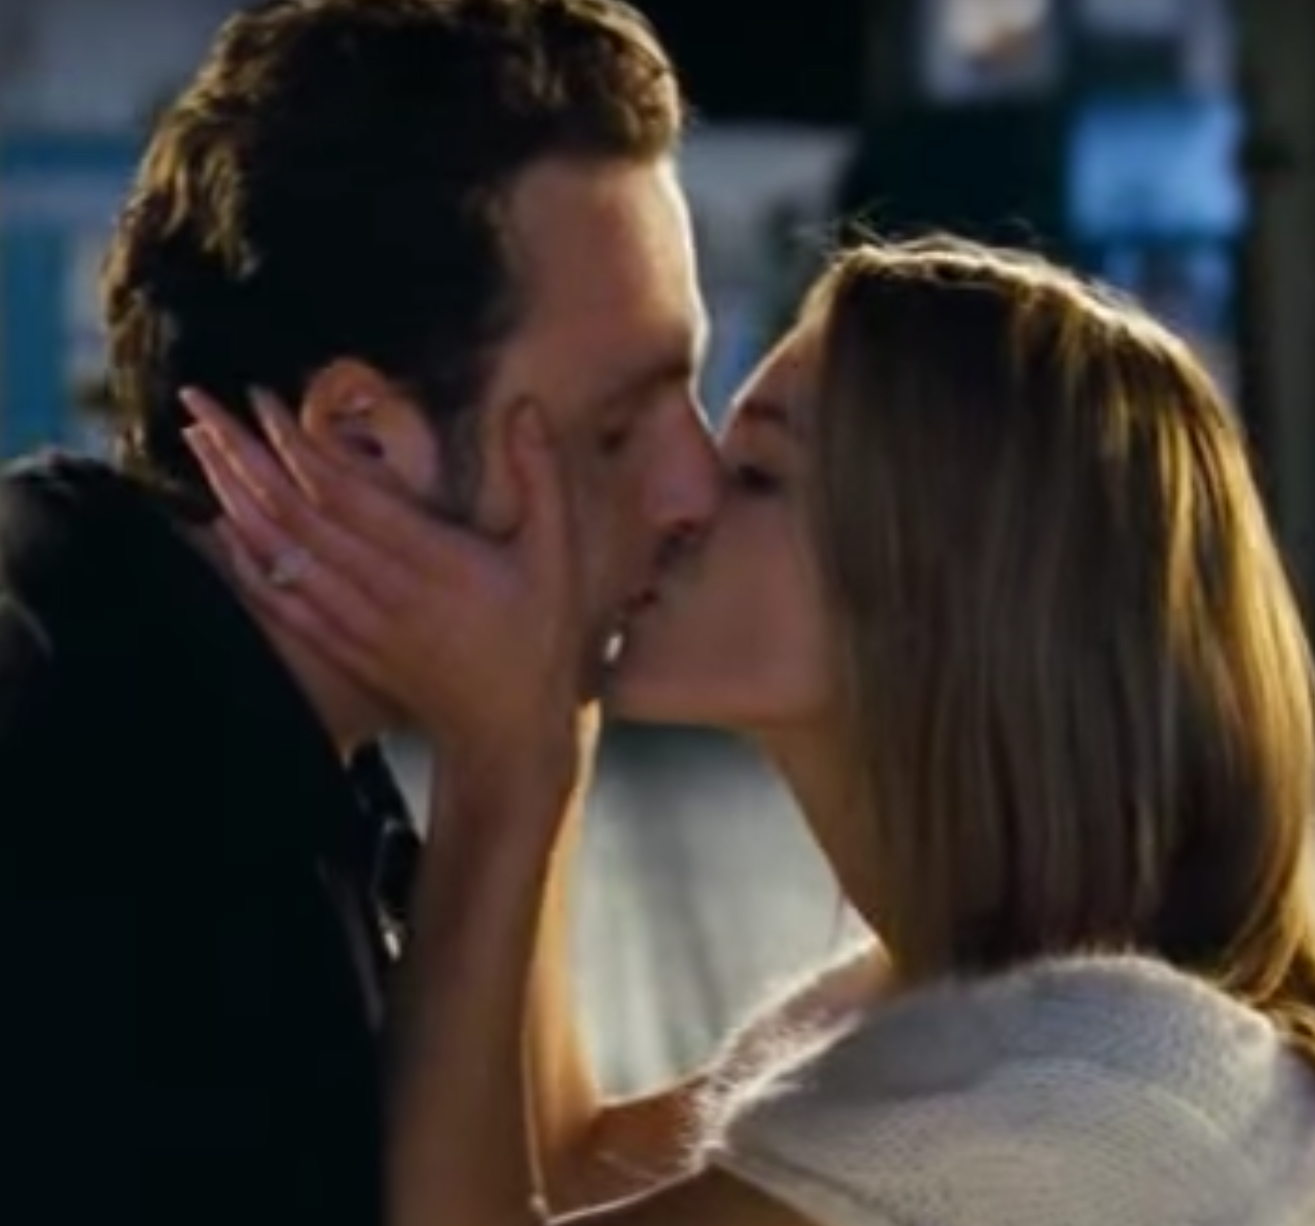 1489006039 loveactually2 e1597745570753 20 Great Movie Romances That Are Actually Deeply Problematic